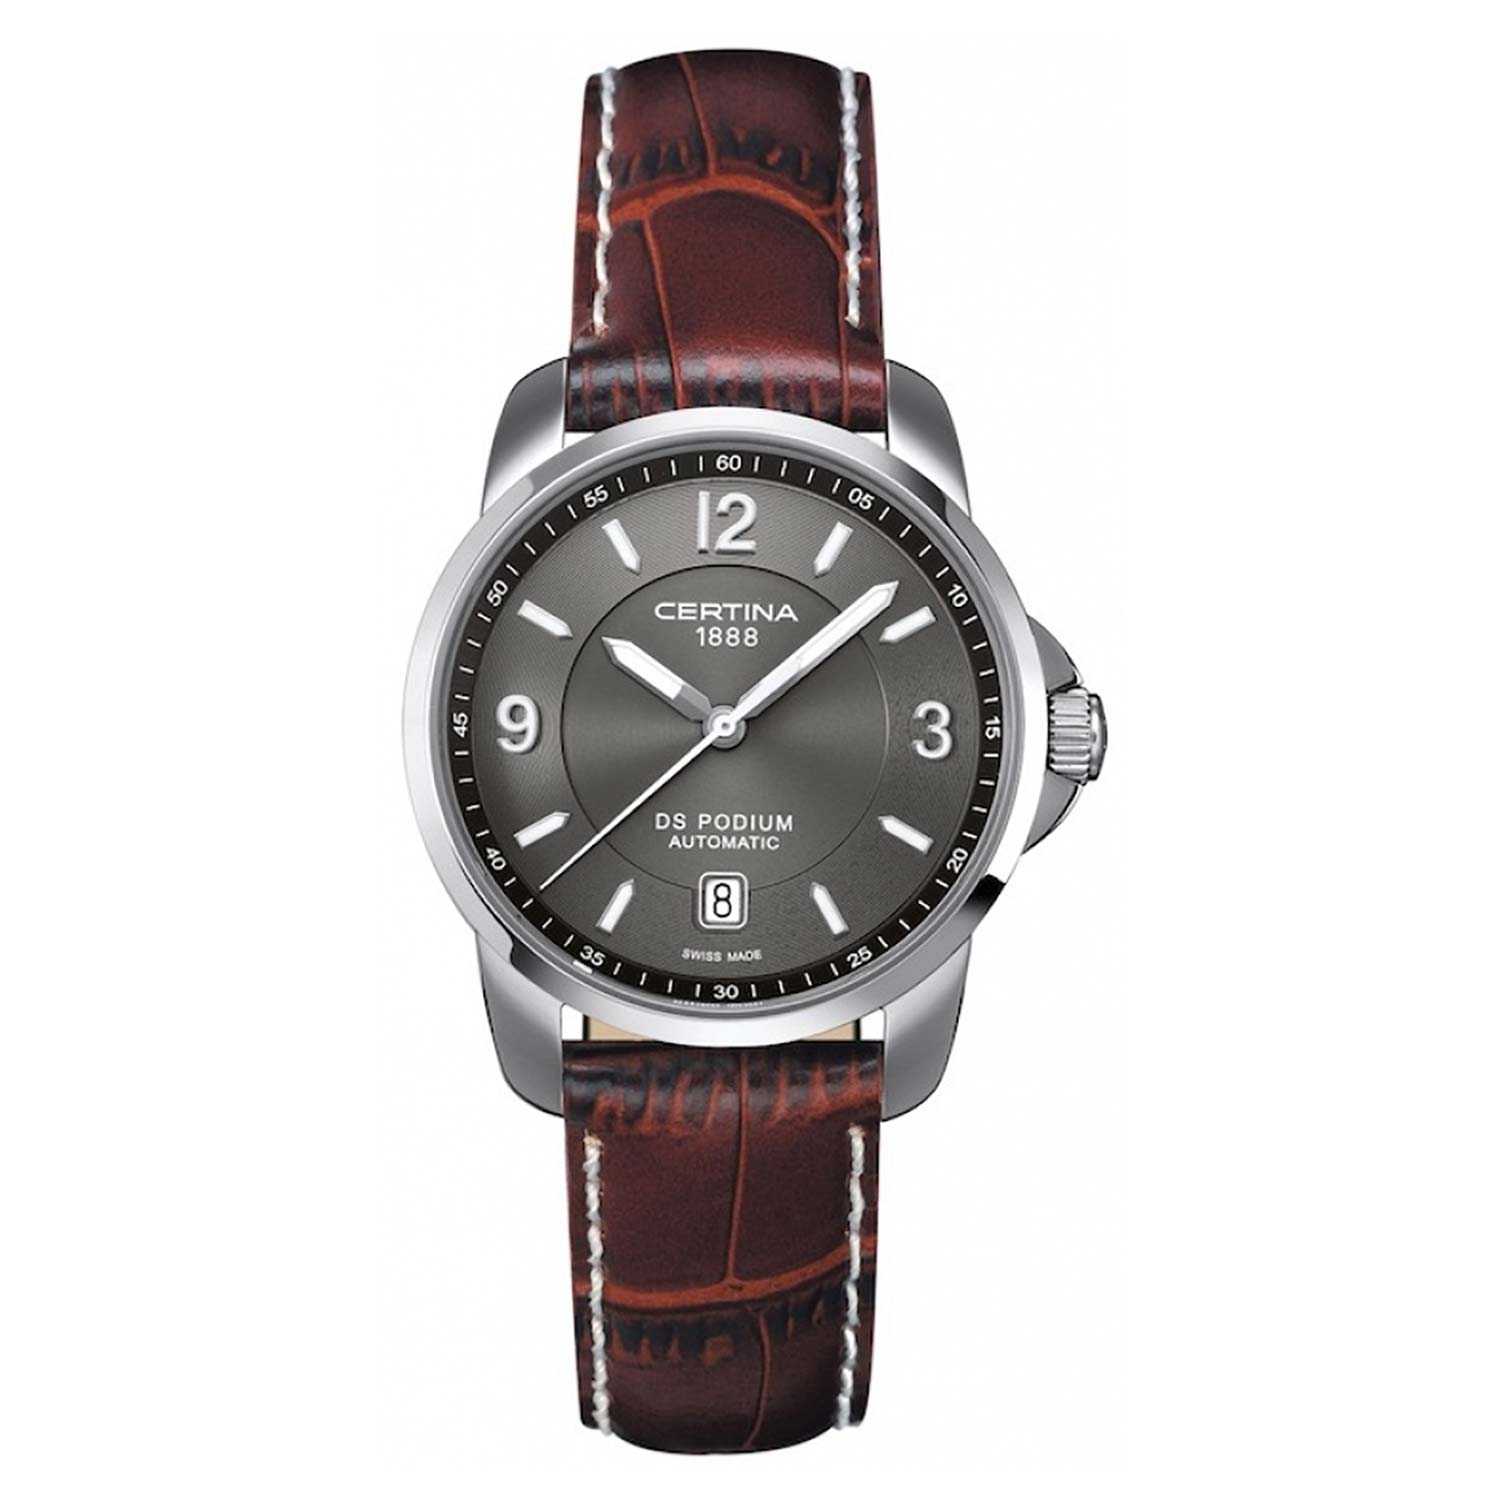 Certina-DS-Podium-Automatic-C001.407.16.087.00-mechanische-Automatikuhr-Herren